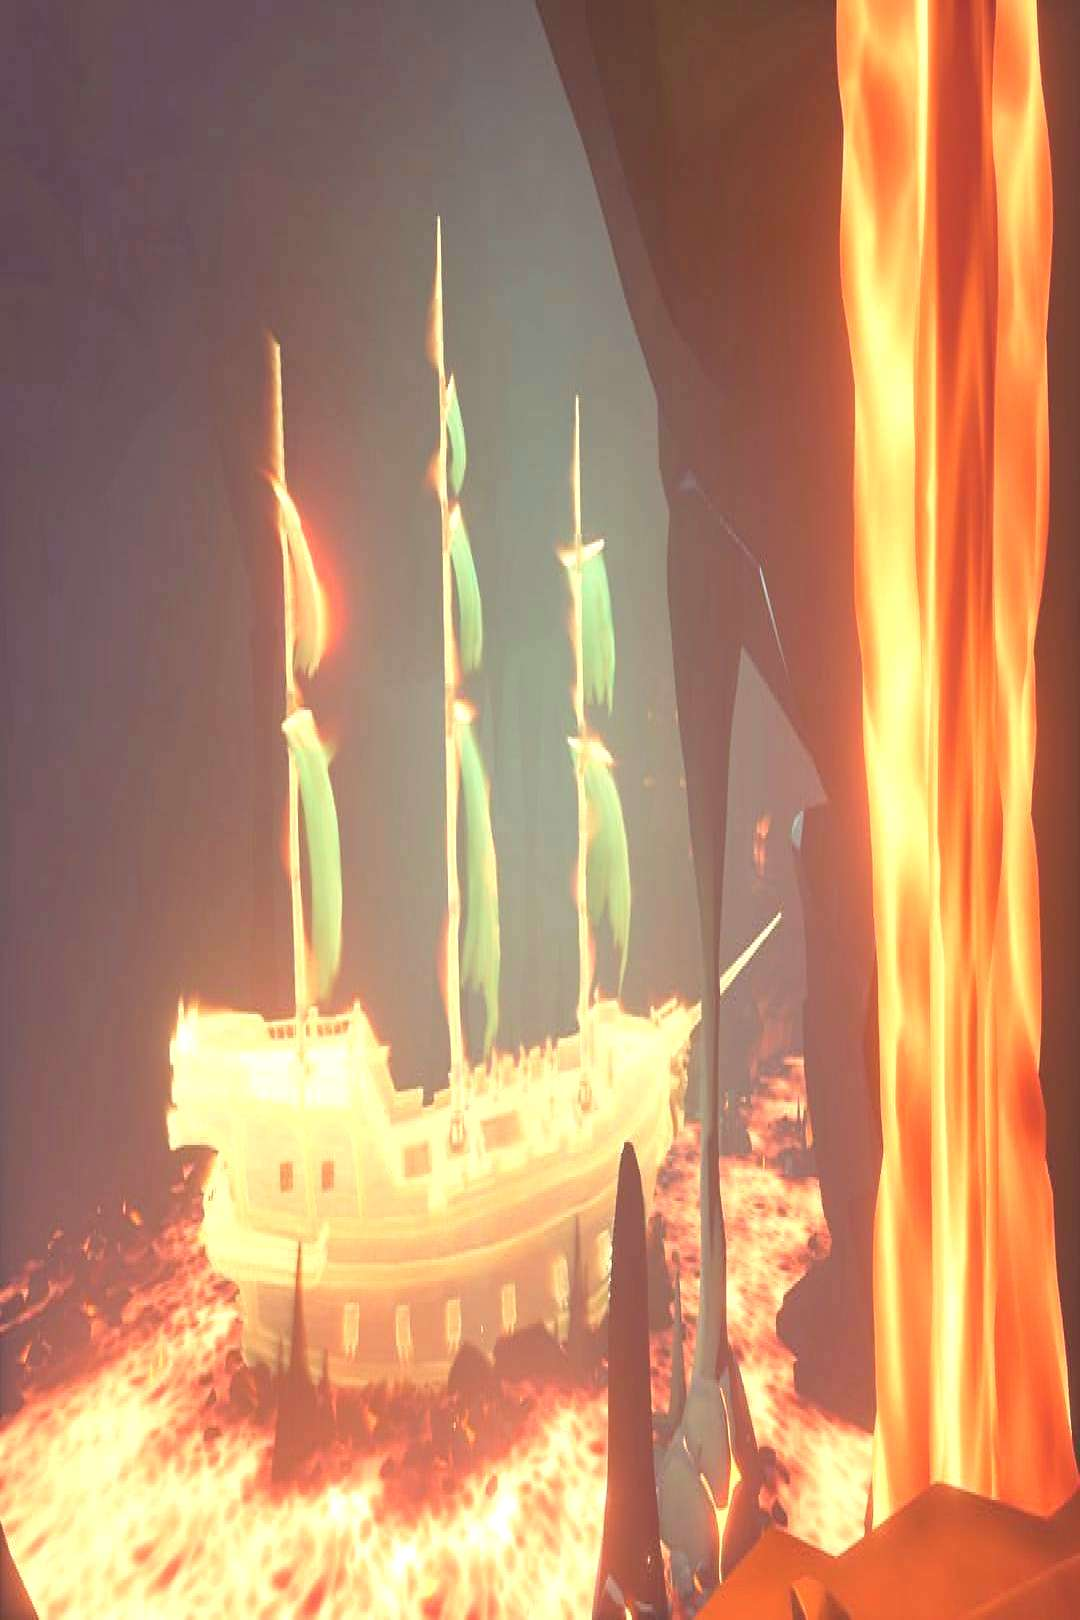 fireYou can find Pirates and more on our re